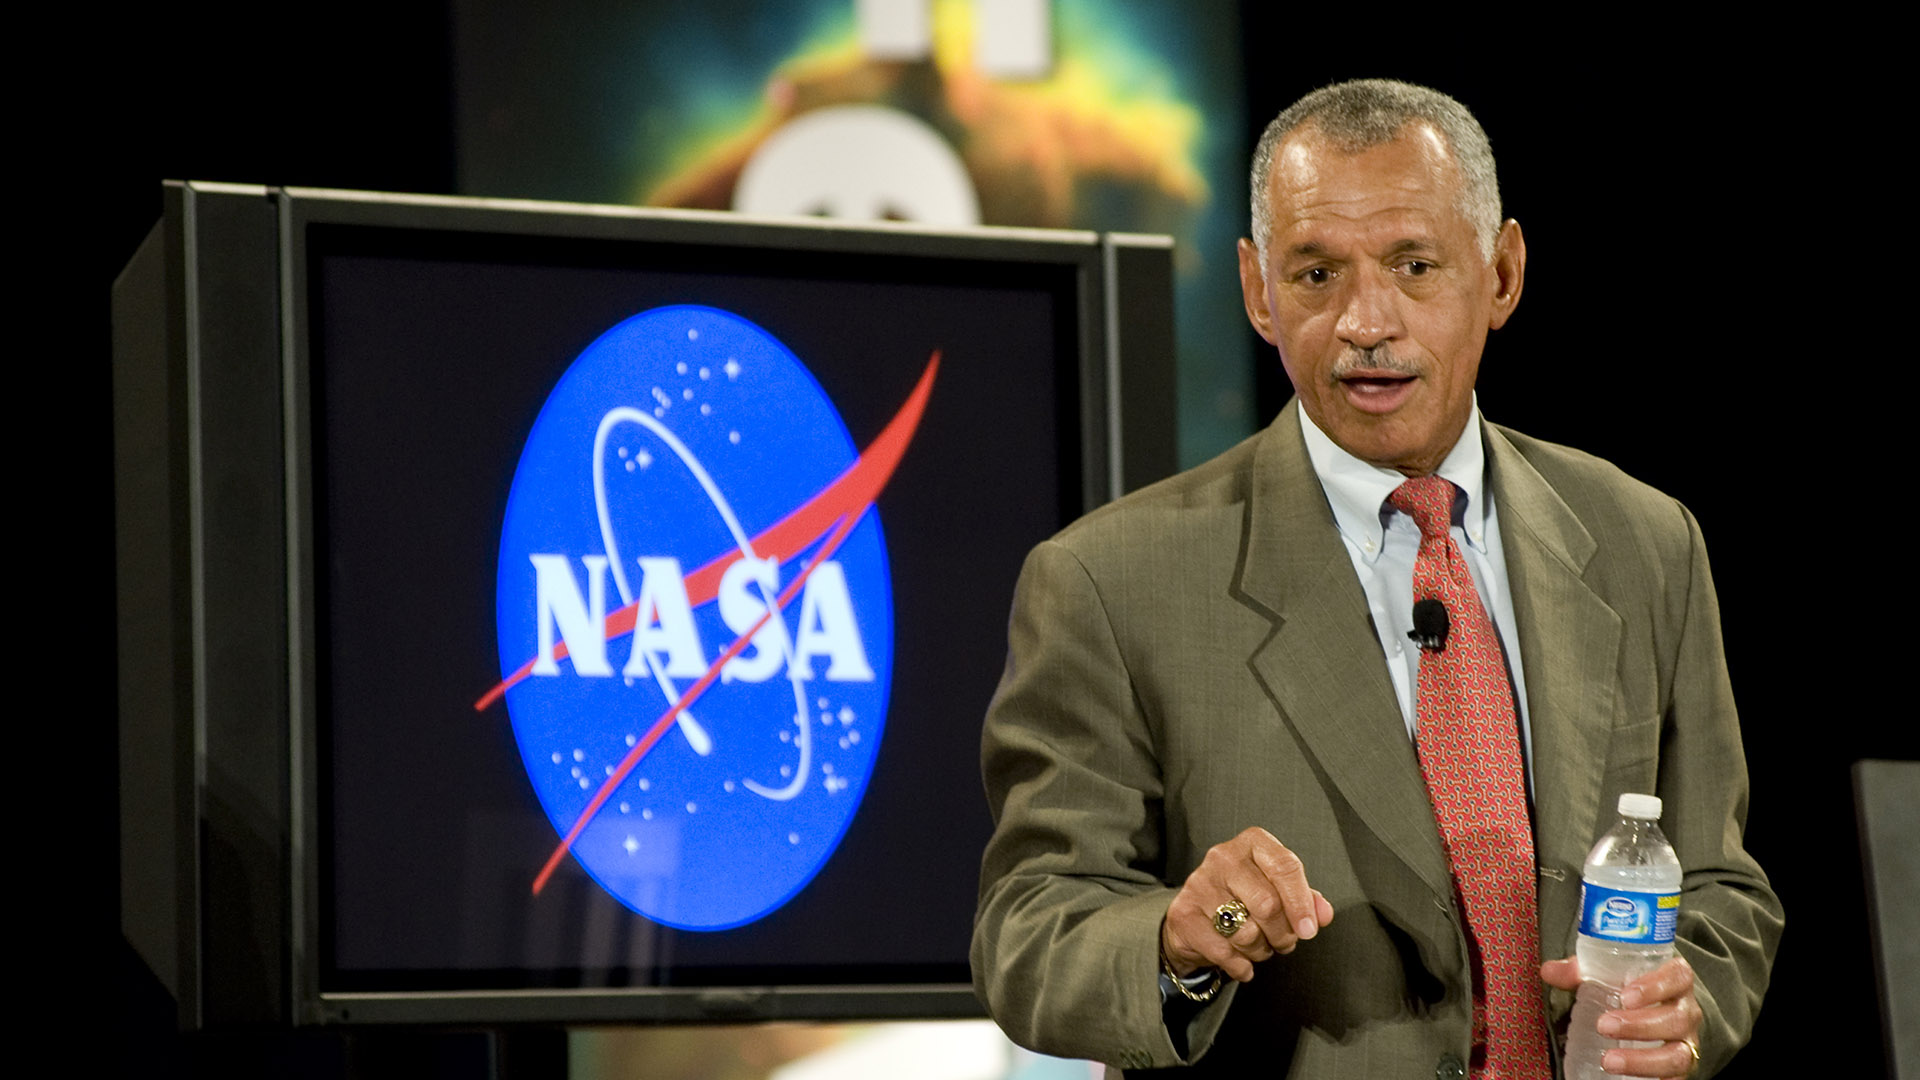 Retired Marine General Charles Bolden at the Goddard Space Flight Center in 2010, when he was administrator of NASA.